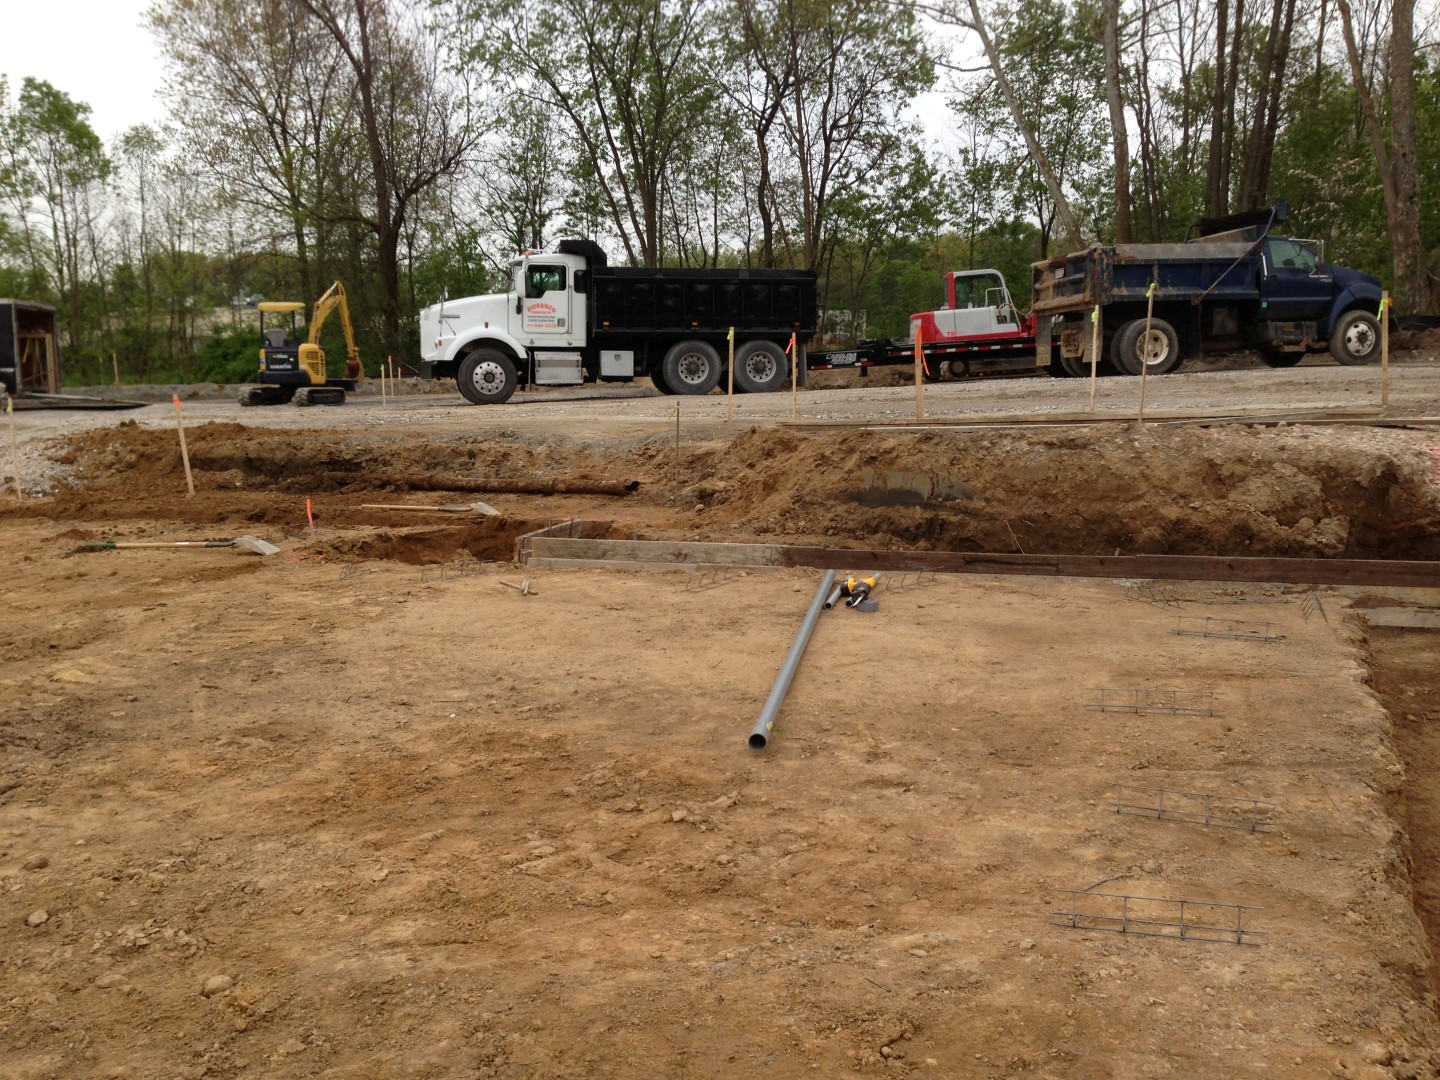 Excavation for a foundation for a new commercial building